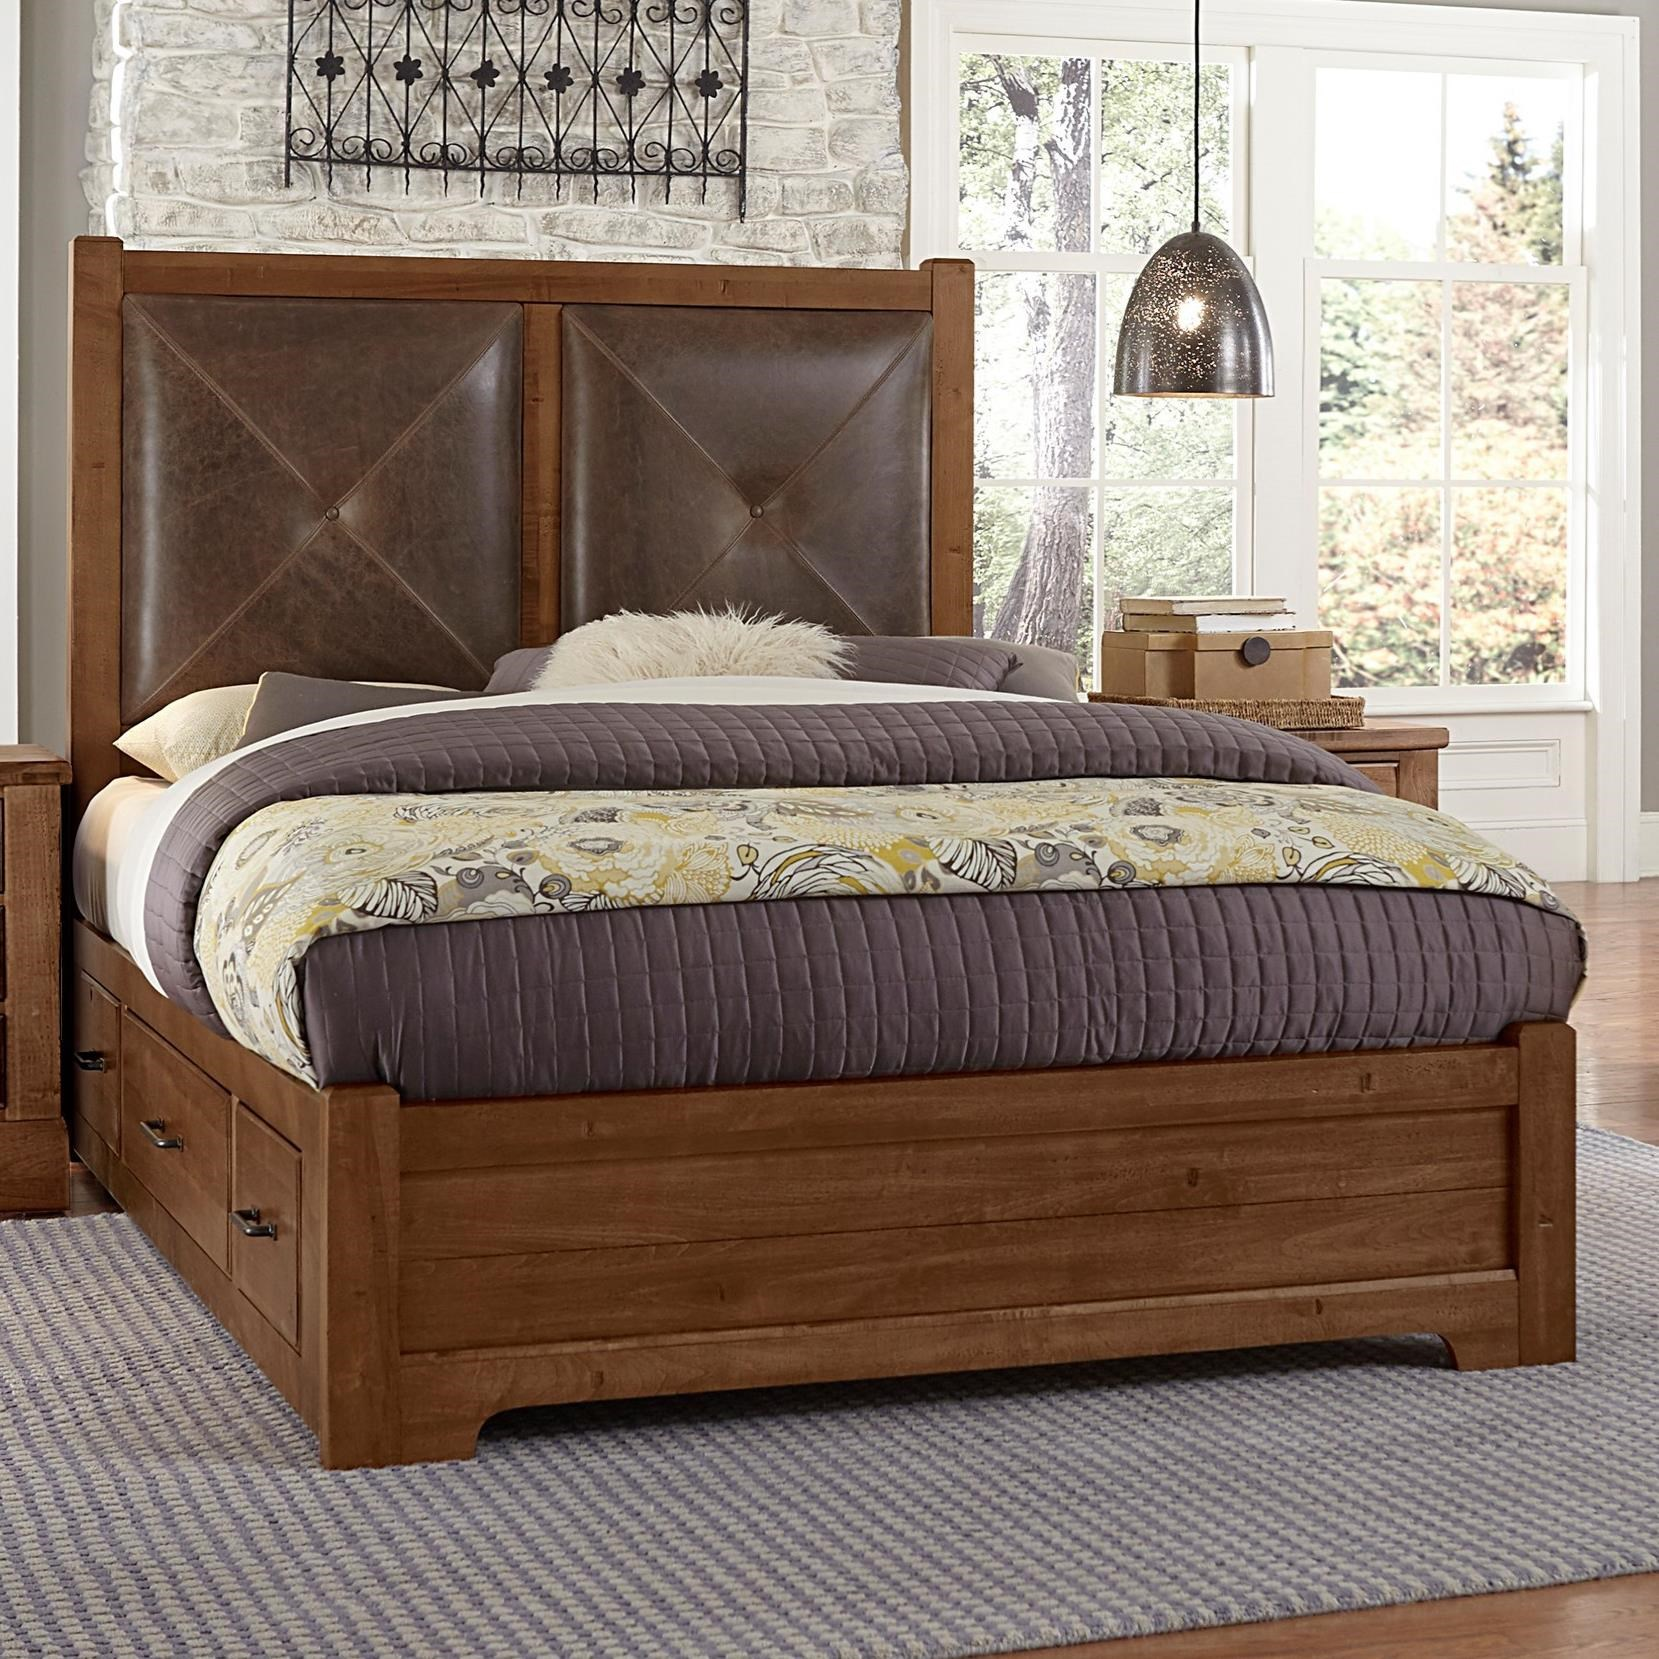 Artisan & Post Cool Rustic Solid Wood Queen Leather ...